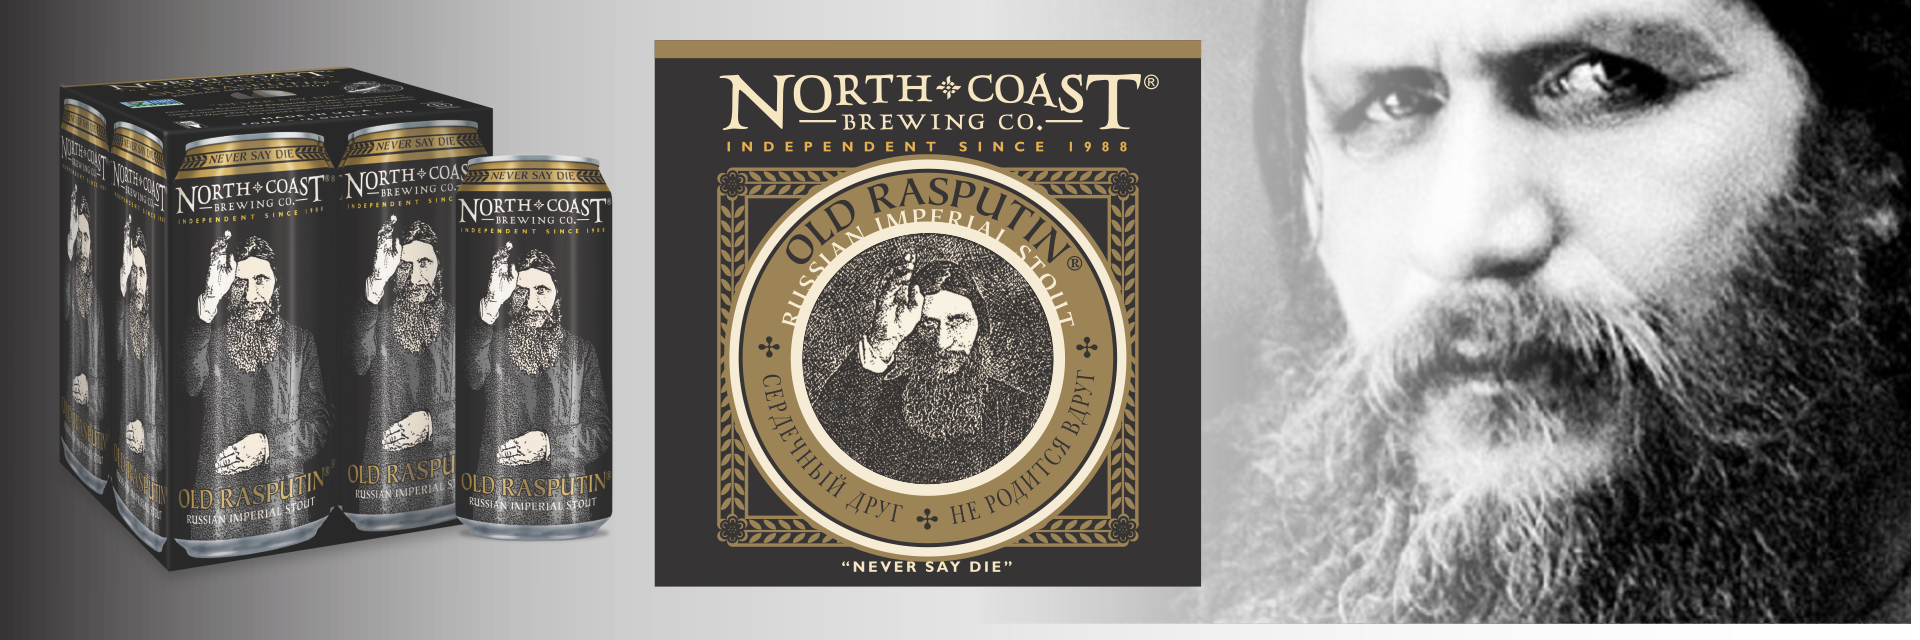 North Coast Brewing Company Announces Old Rasputin Russian Imperial Stout in Cans